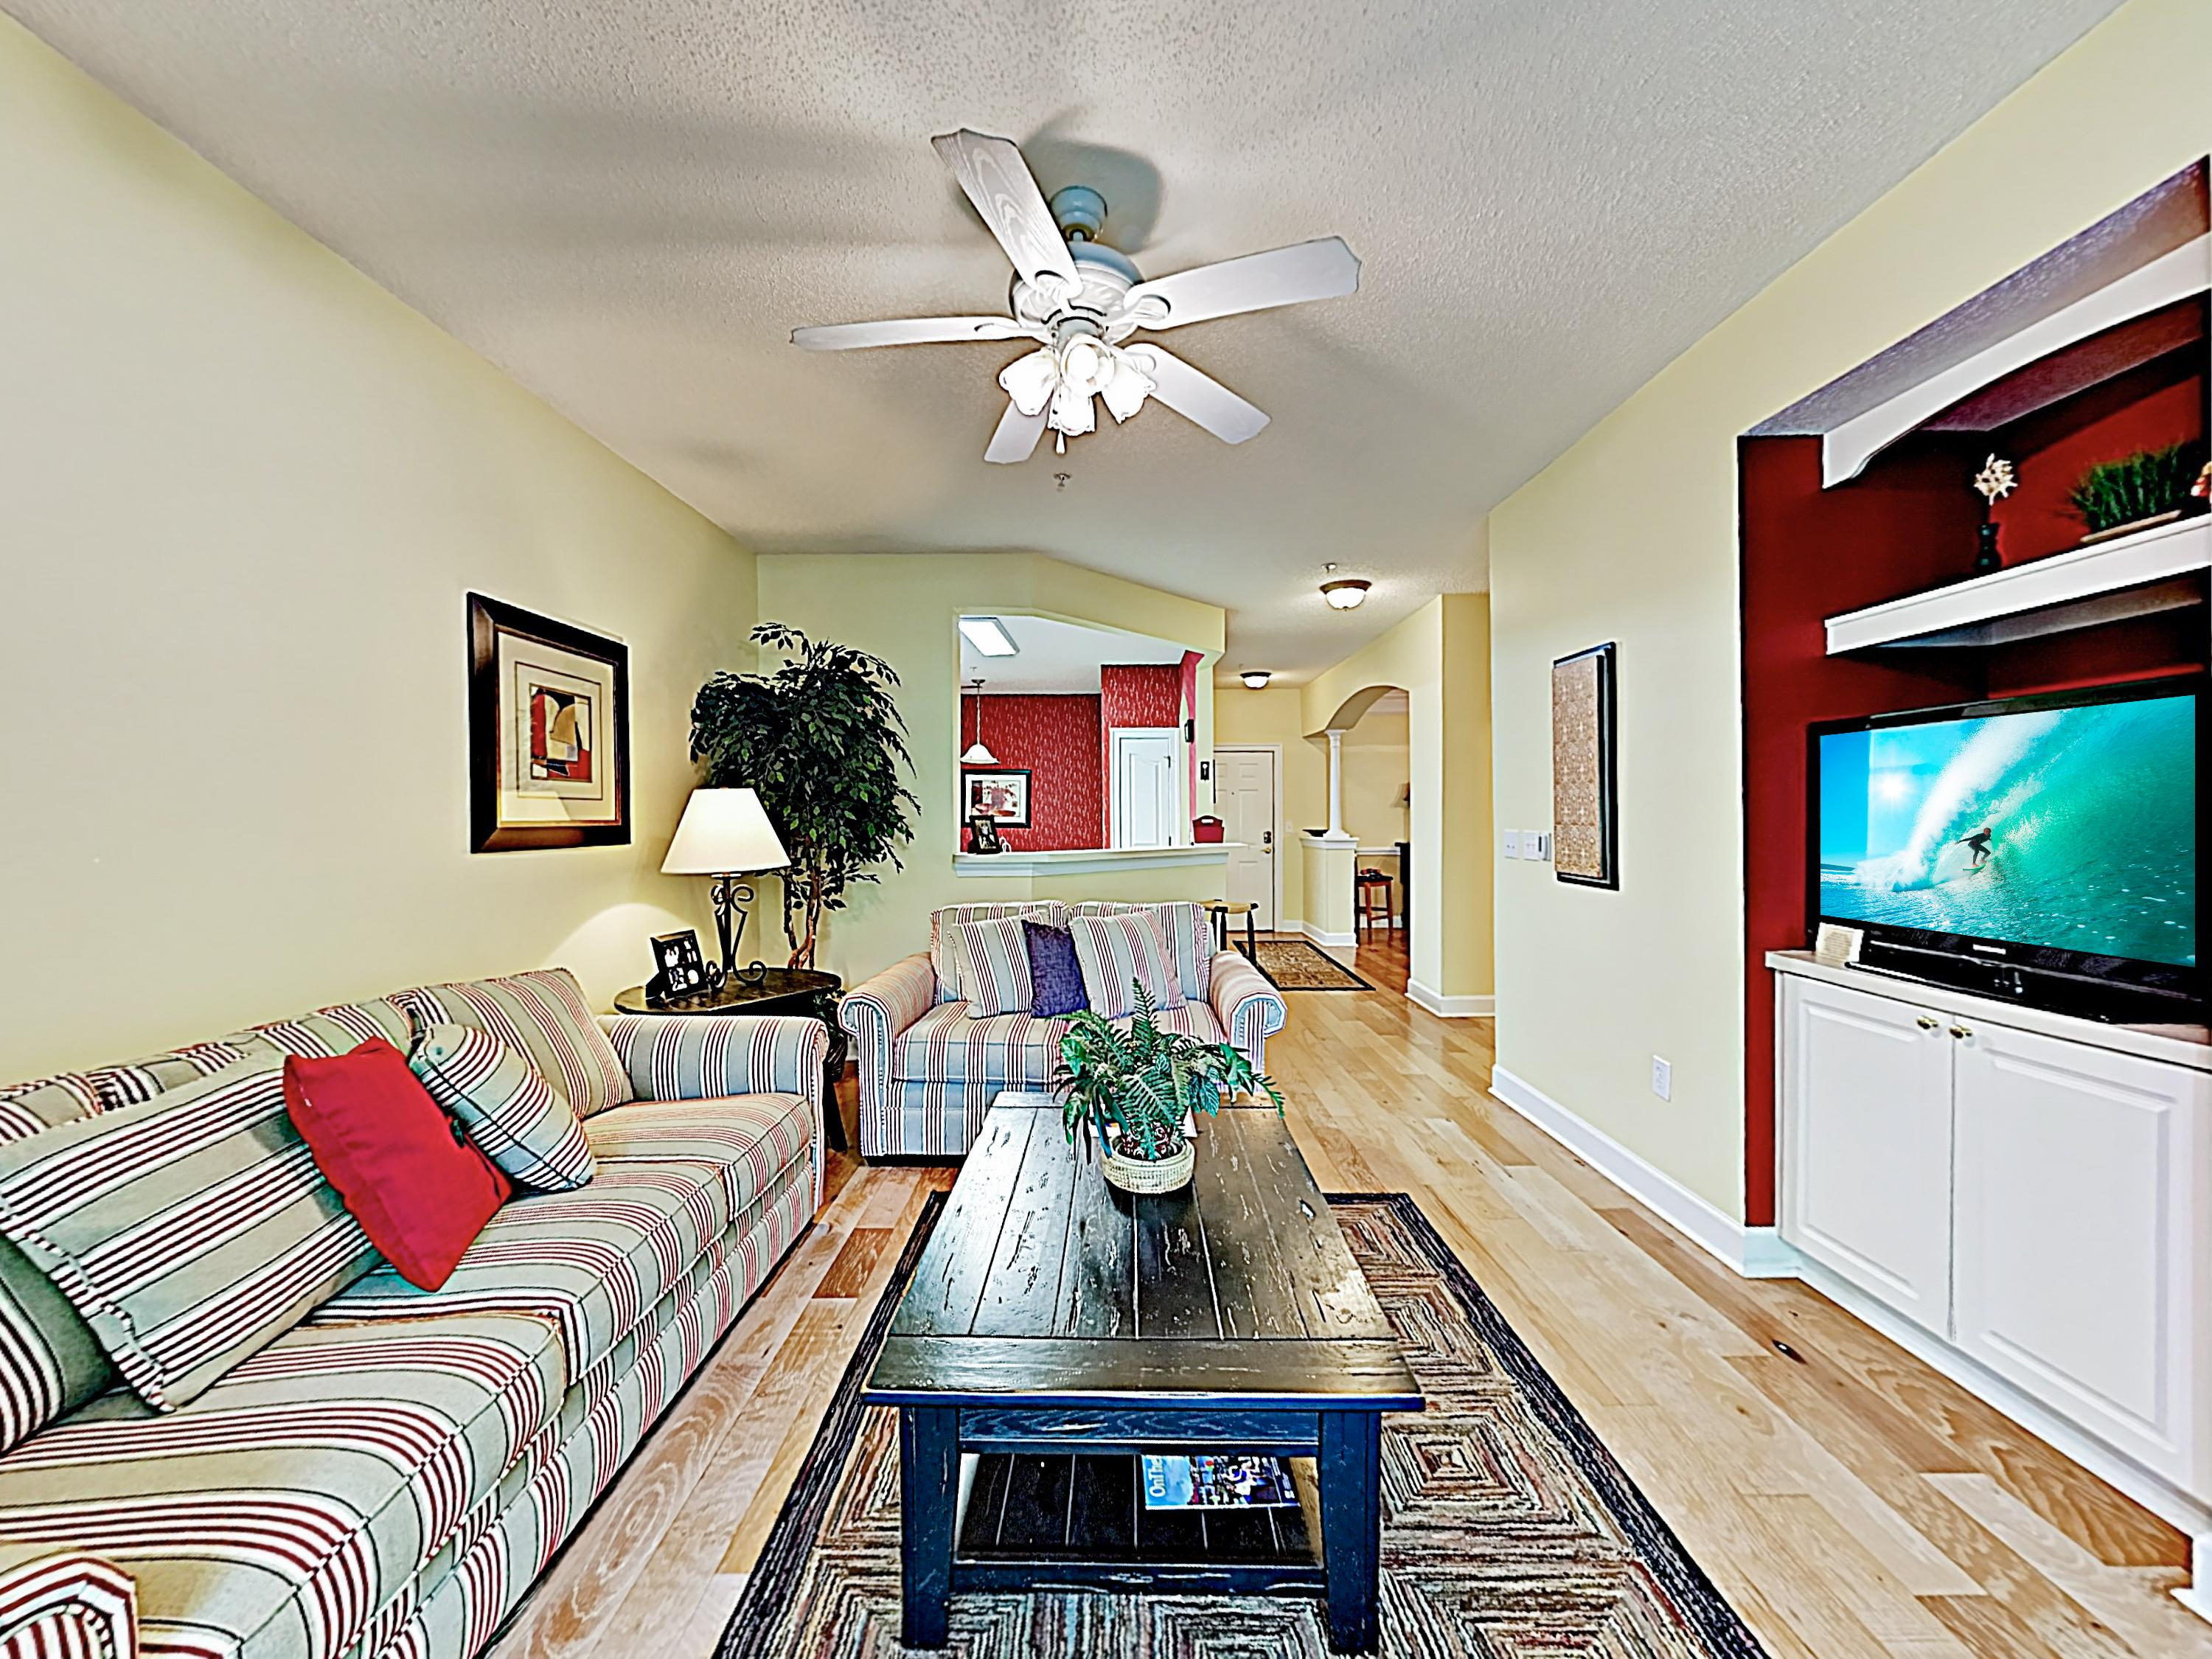 Welcome to Greenbriar Resort! This condo is professionally managed by TurnKey Vacation Rentals.